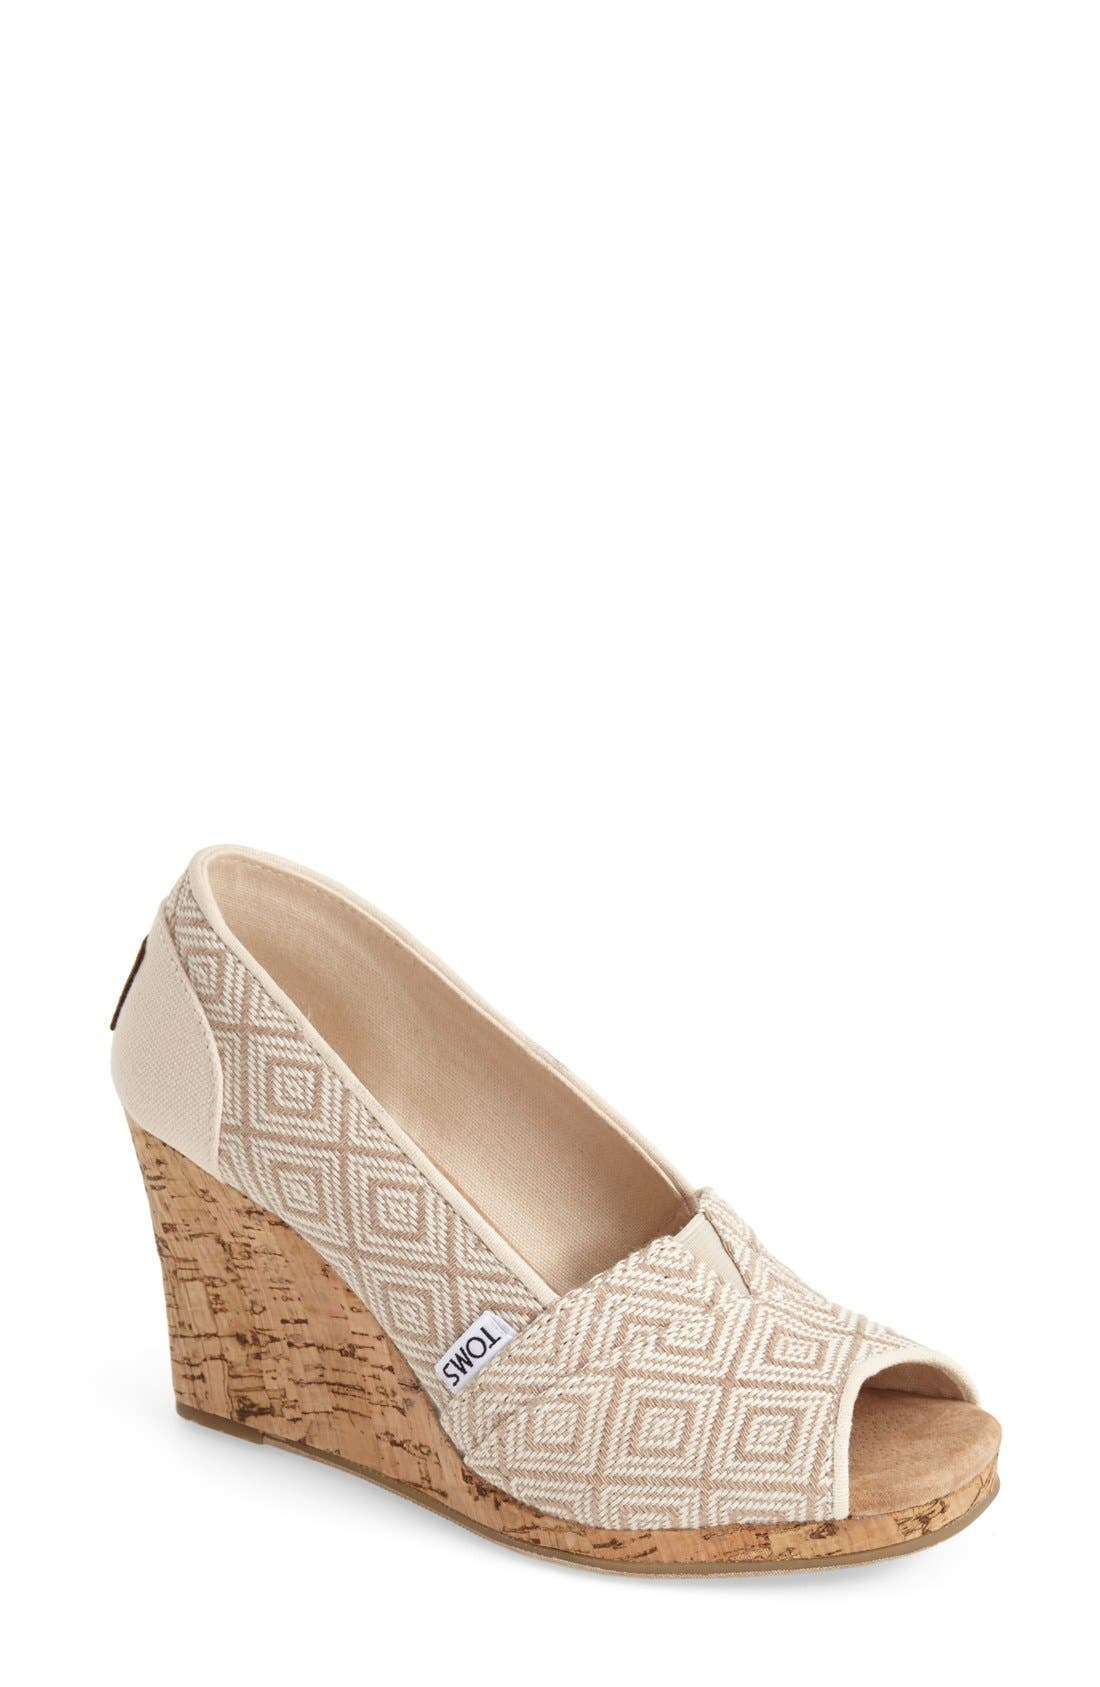 Alternate Image 1 Selected - TOMS 'Classic' Woven Wedge Sandal (Women)